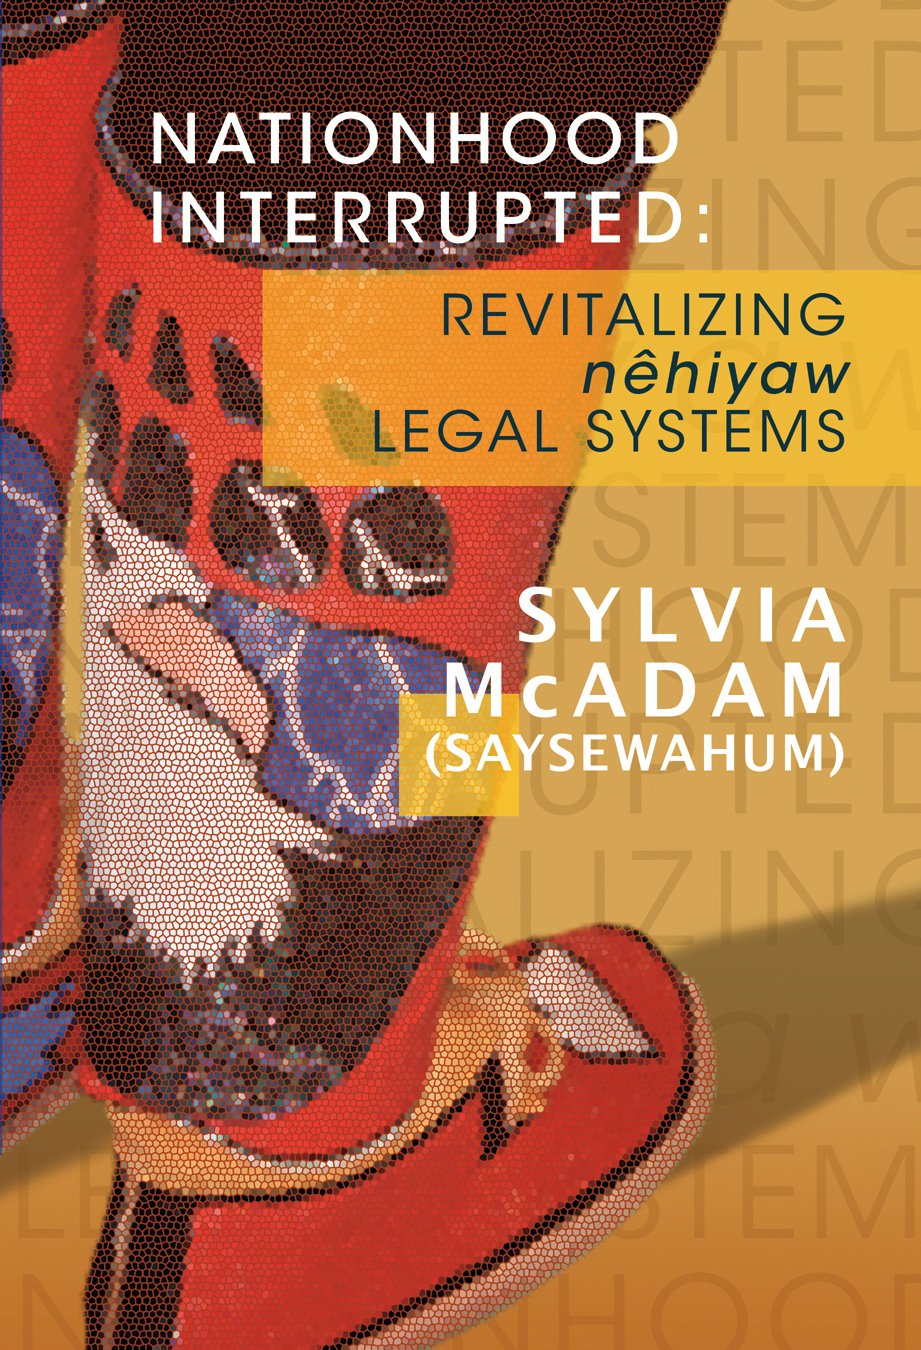 The archive includes a dedicated copy of  Nationhood Interrupted: Revitalizing Nehiyaw Legal Systems , authored by Sylvia and published in 2015